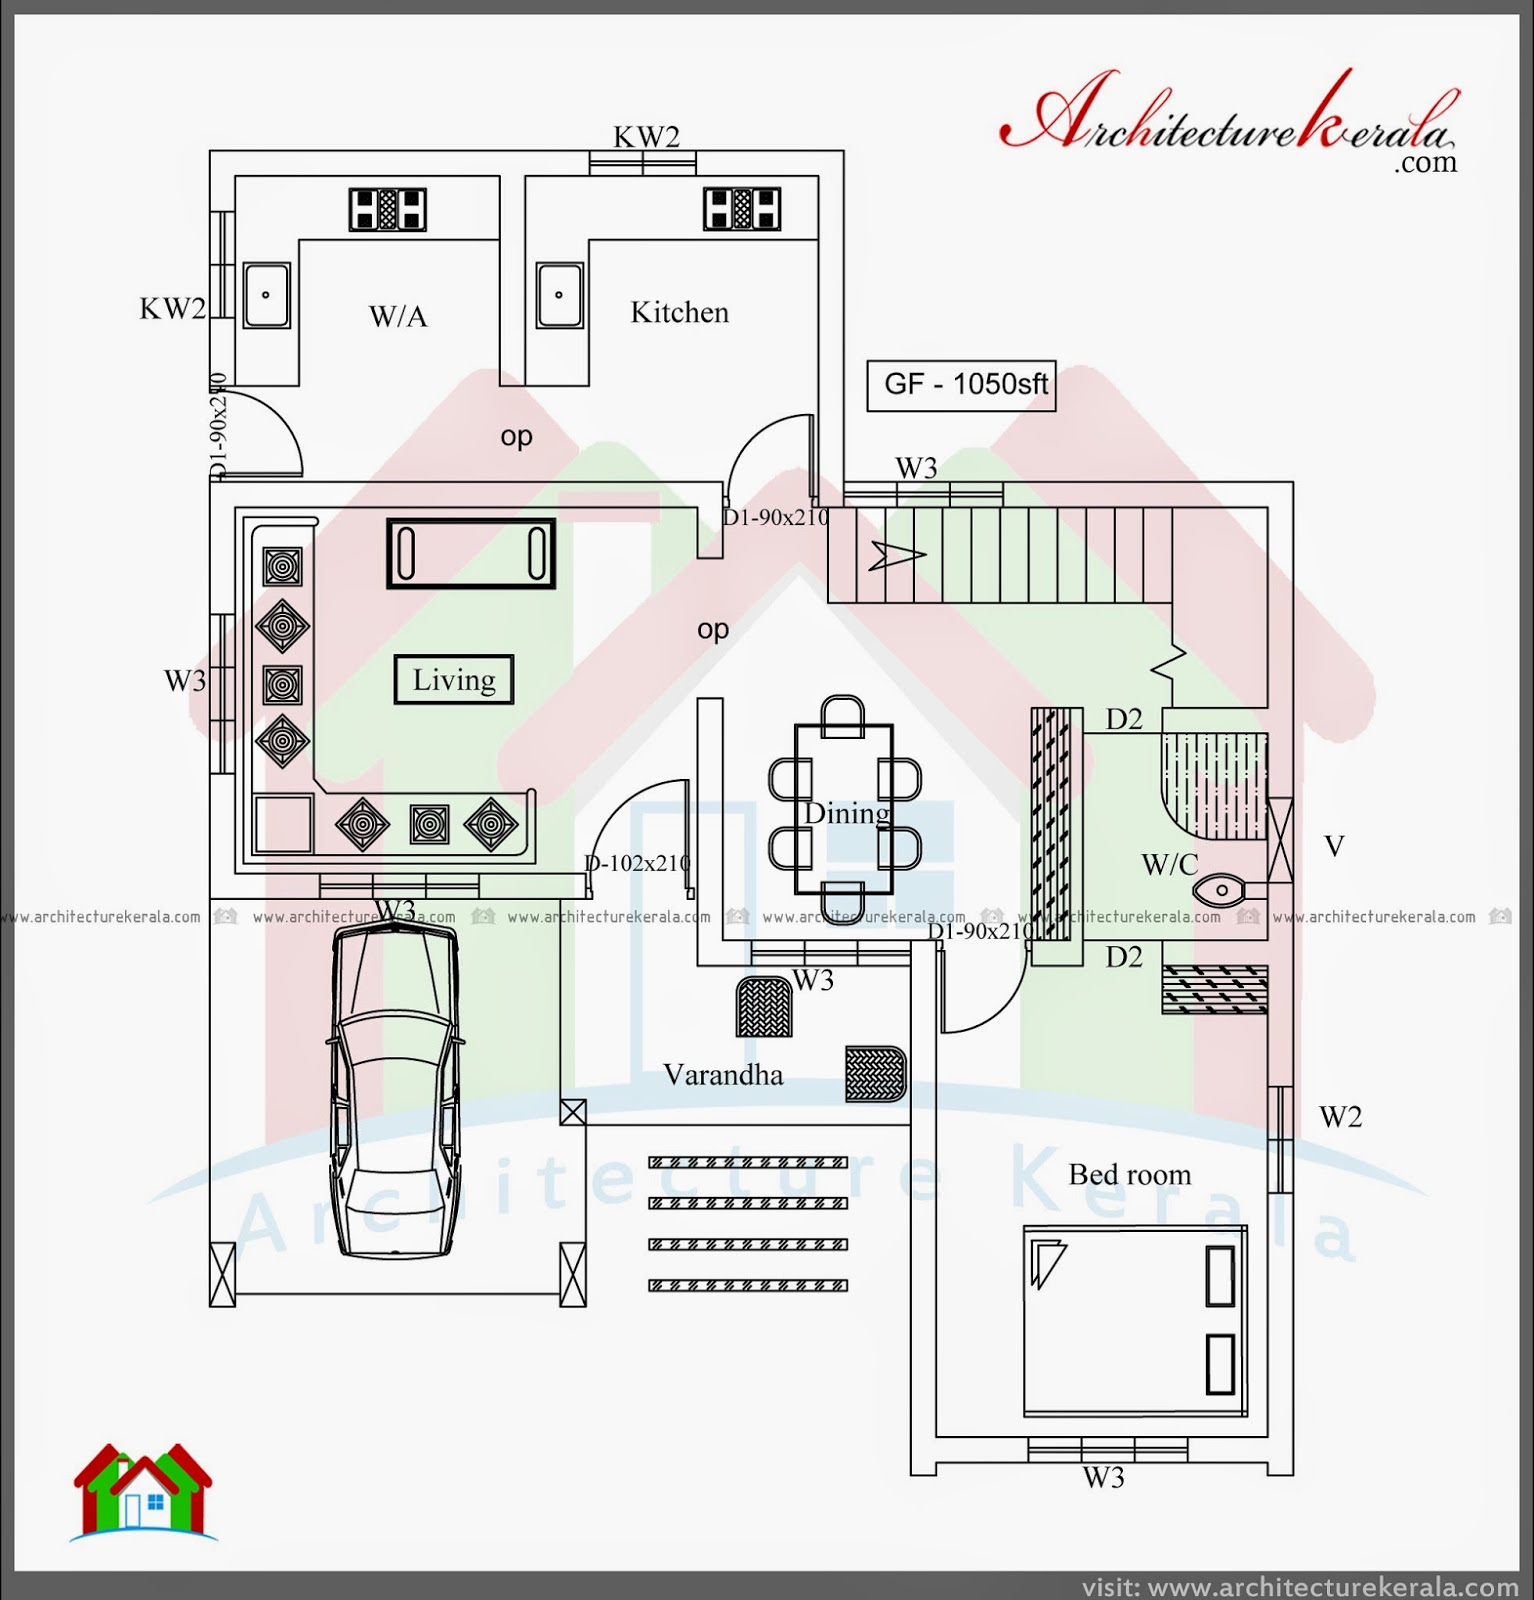 Three bedroom two storey house plan architecture kerala for 2 bedroom house plans in india